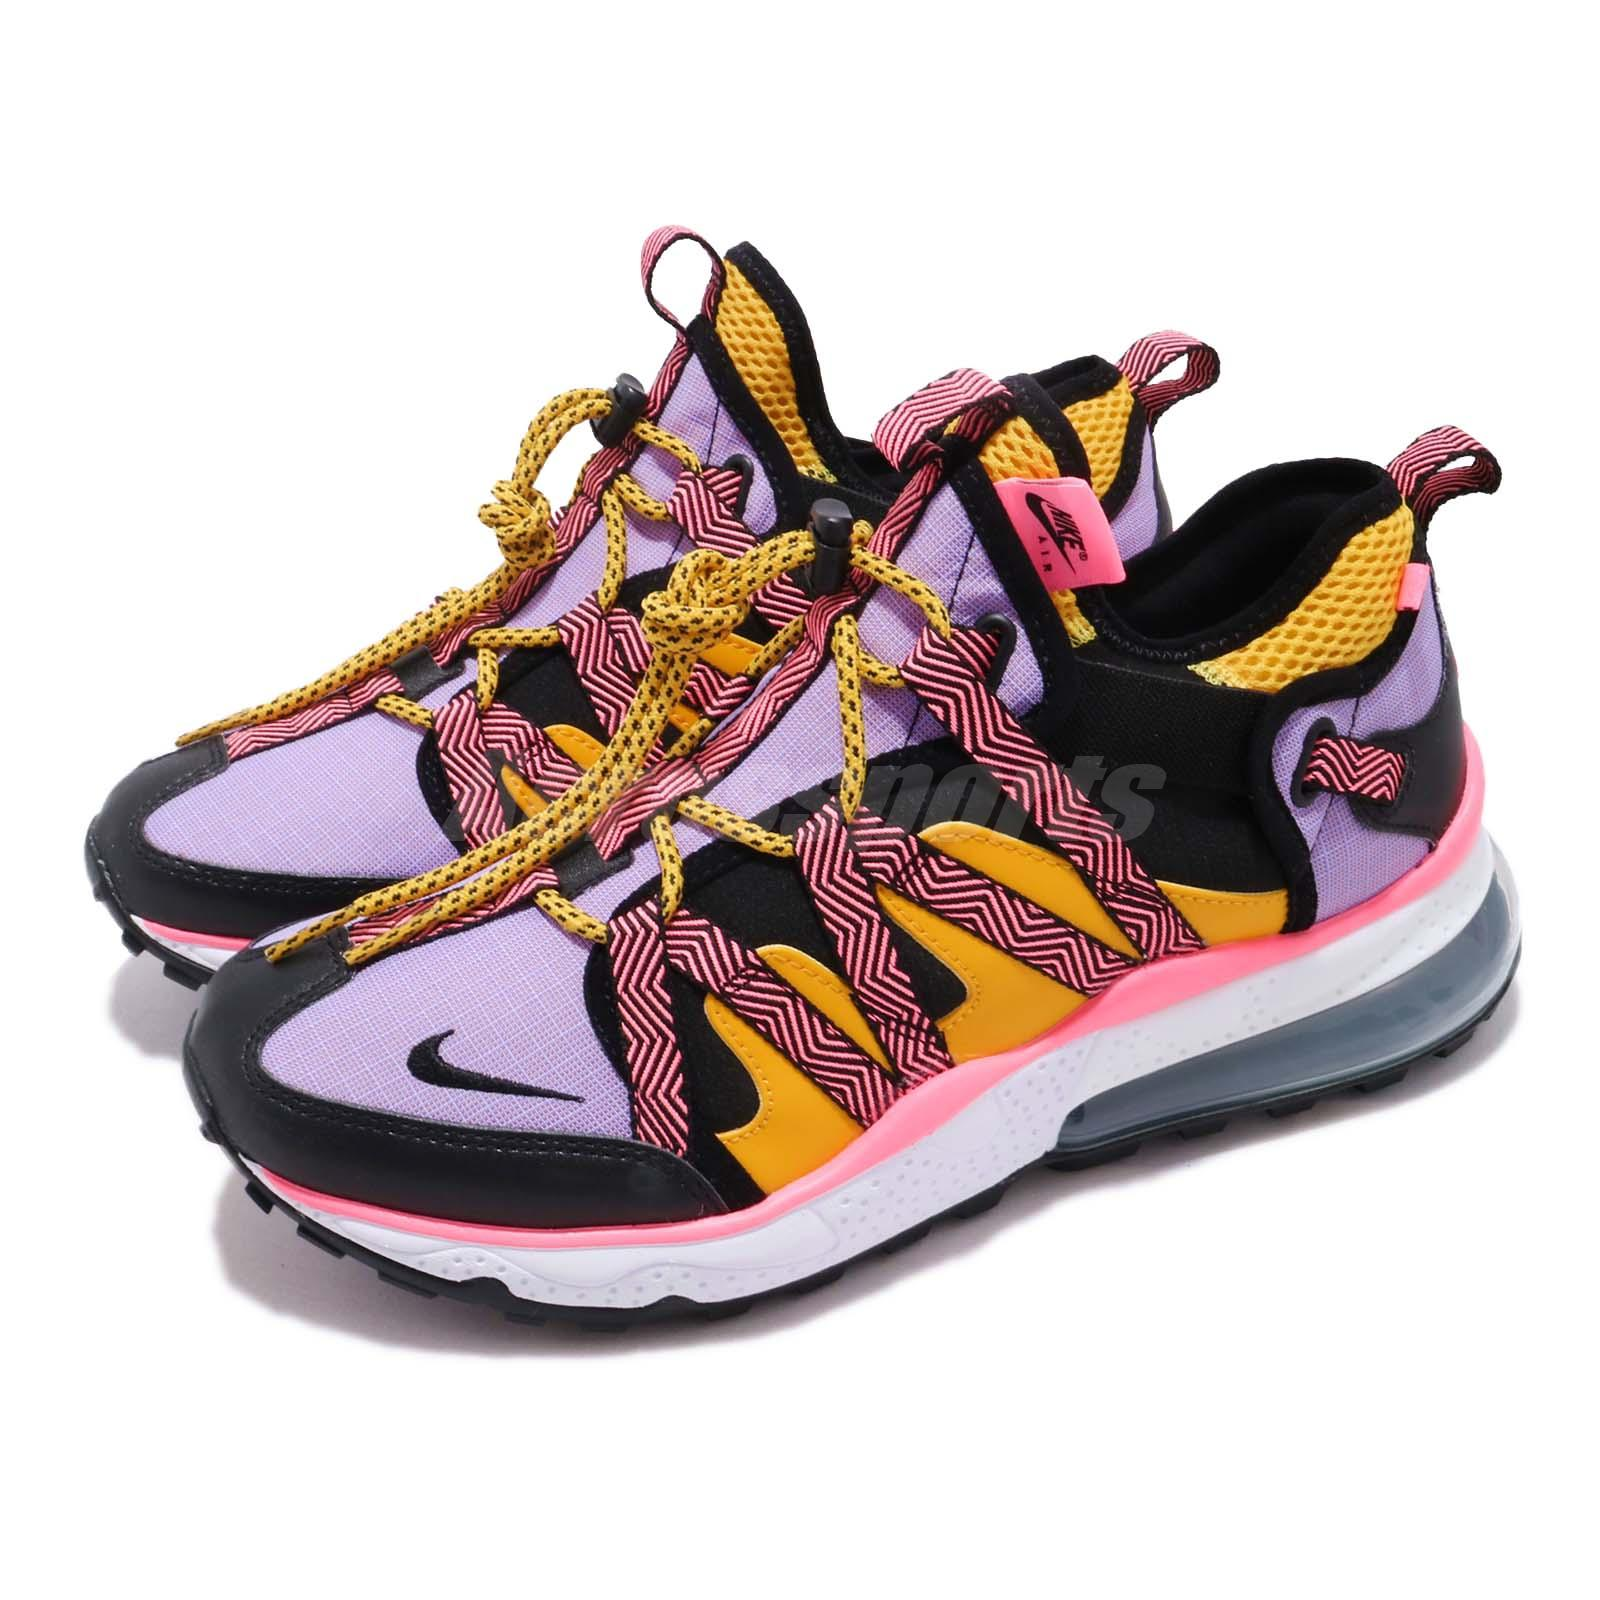 timeless design 2463d 0a6c9 Details about Nike Air Max 270 Bowfin Black Atomic Violet Men Outdoors  Trail Shoes AJ7200-004